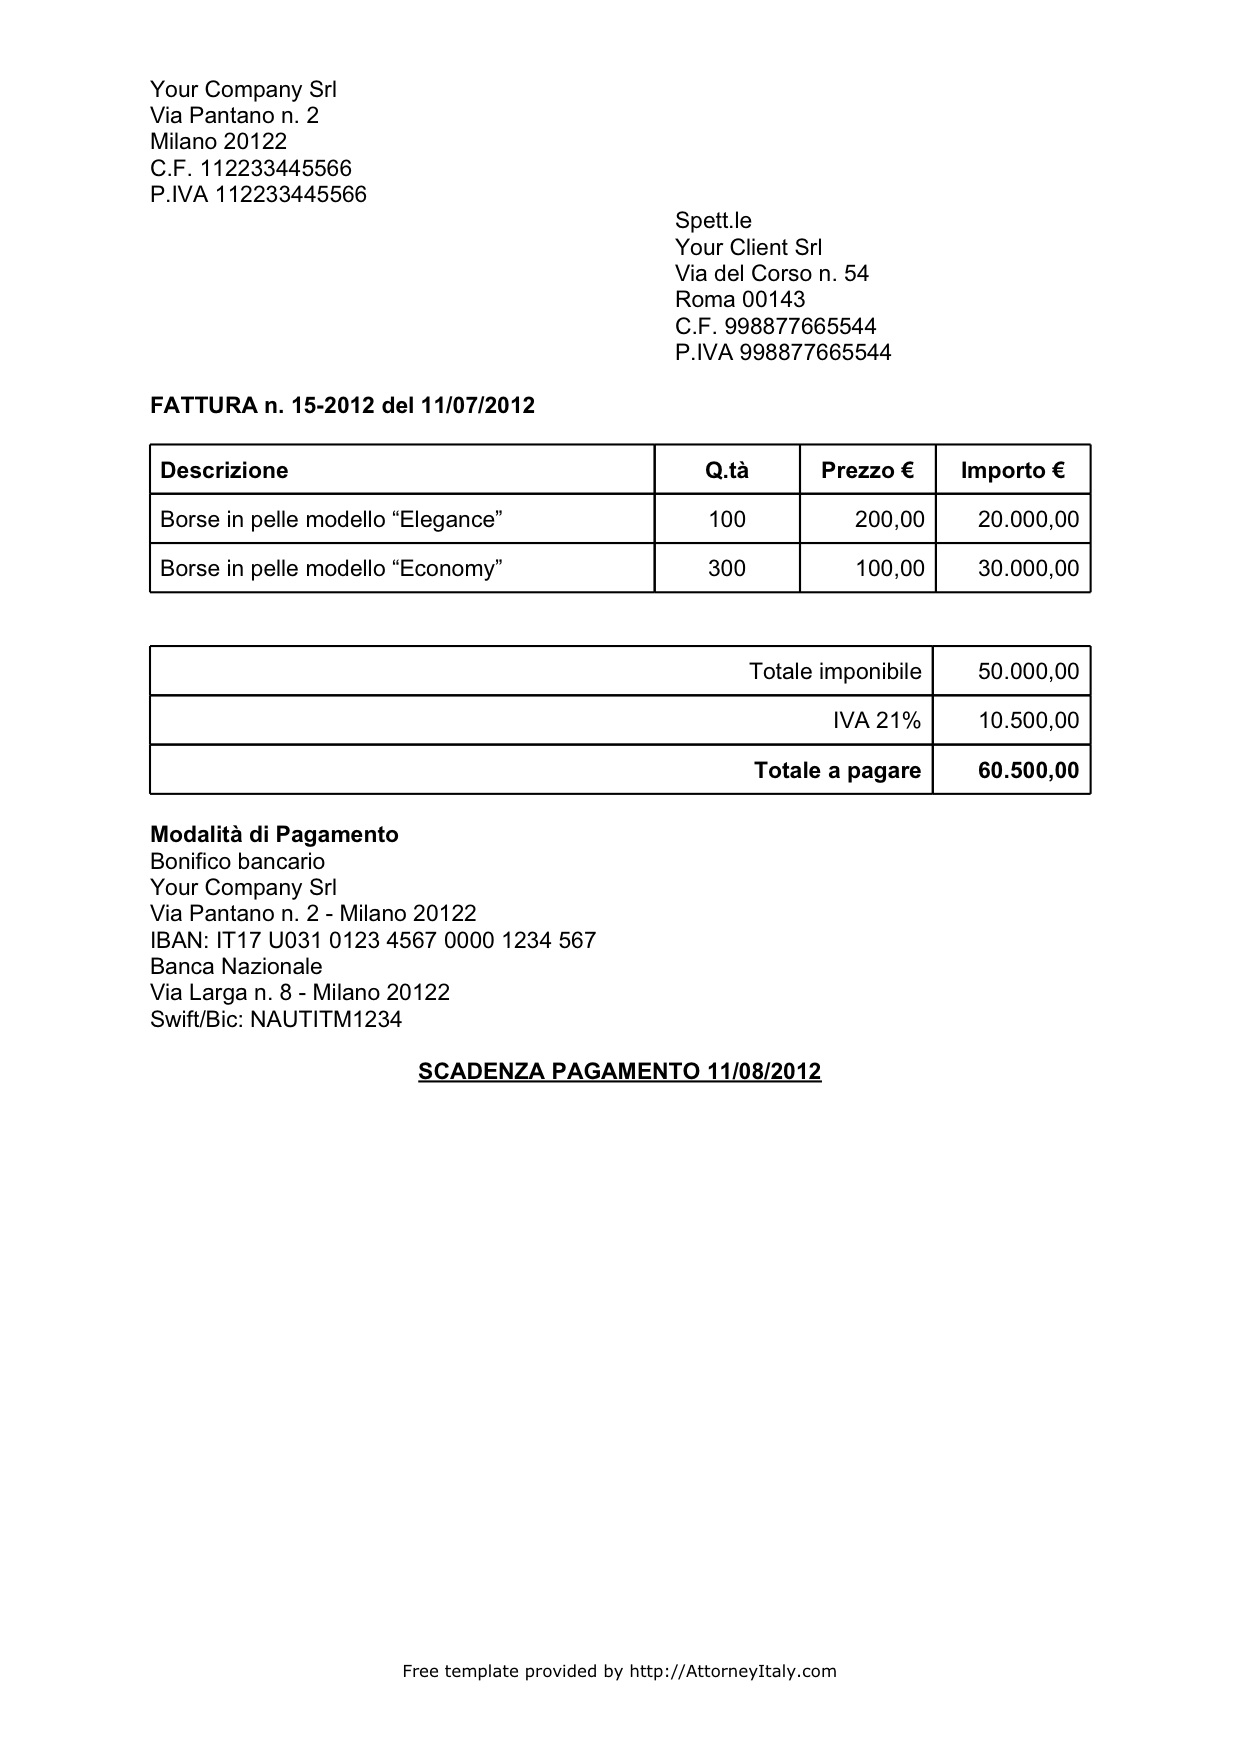 invcovsieraddnscom remarkable italian invoice template with invoice car prices usa